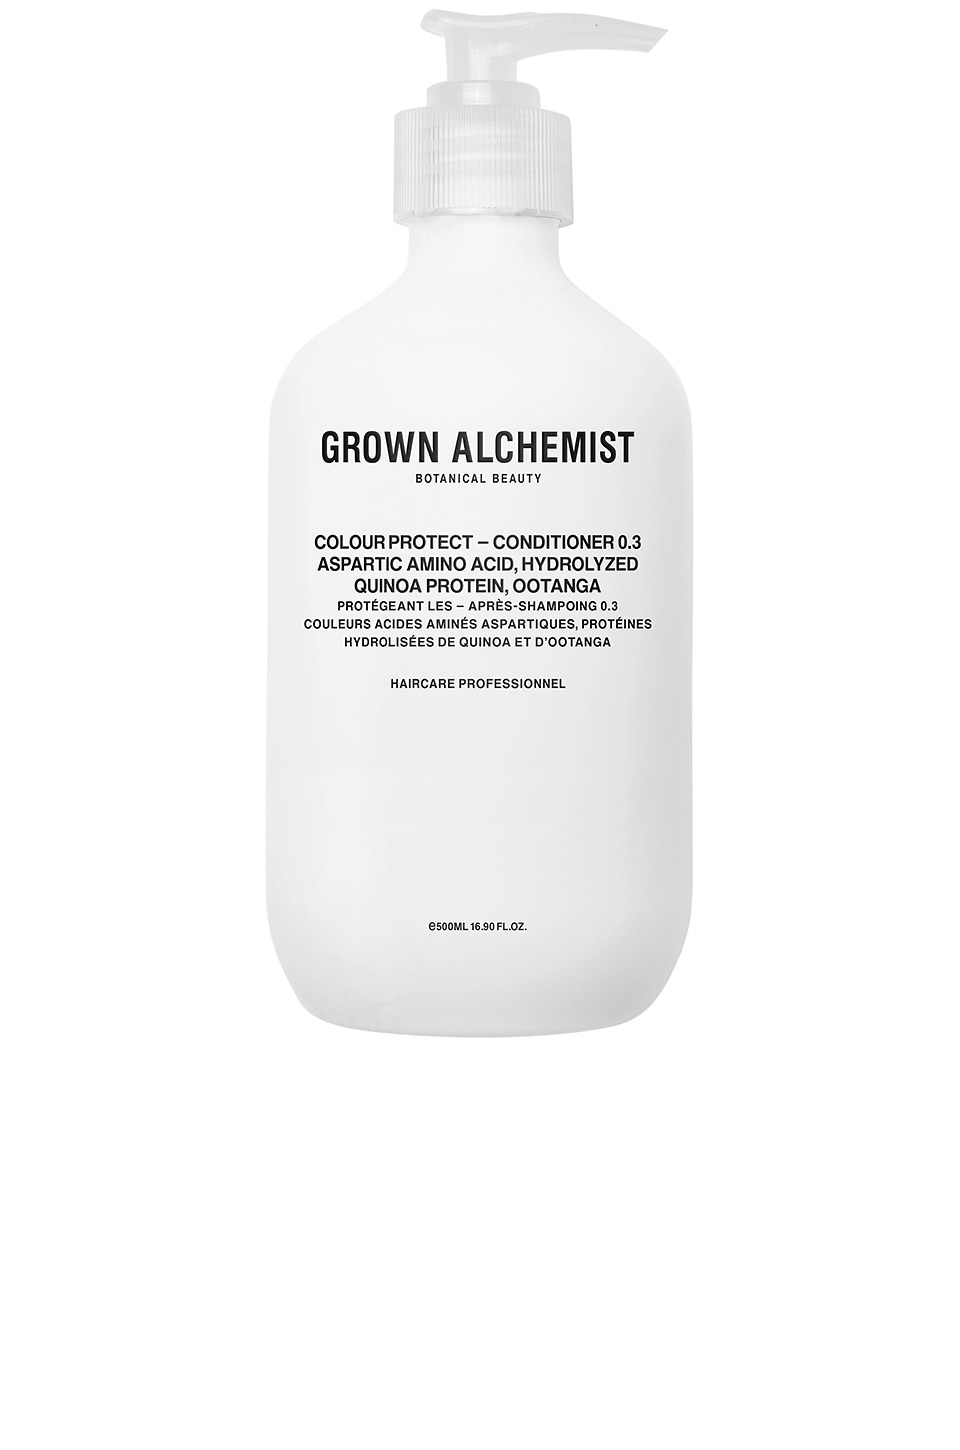 Grown Alchemist Colour-Protect Conditioner 0.3 in Aspartic Amino Acid & Hydrolyzed Quinoa Protein & Ootange